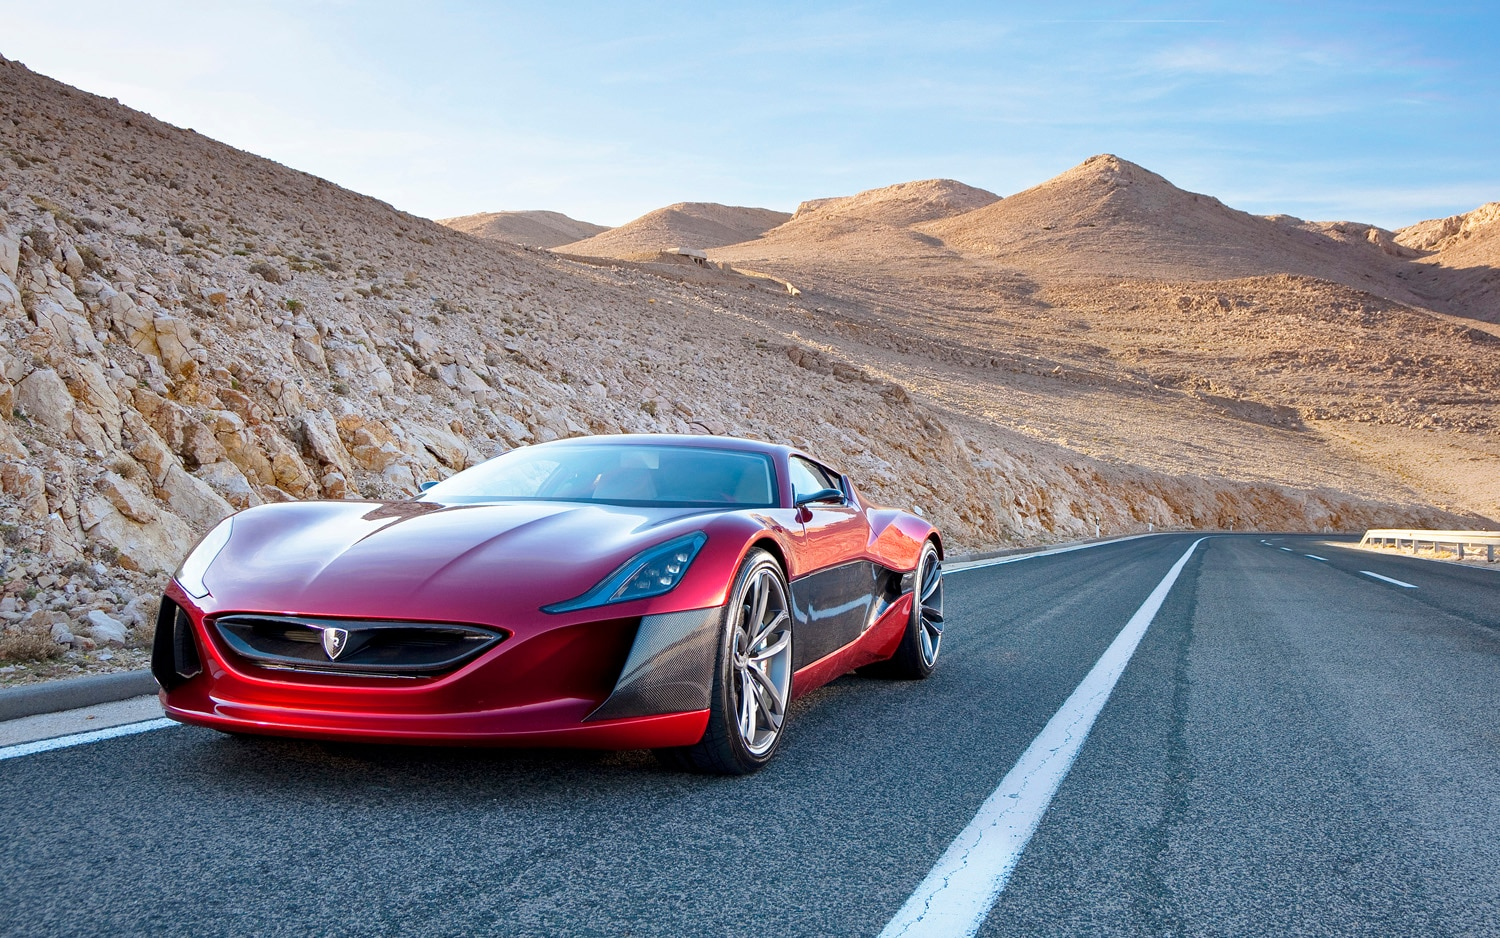 2013 Rimac Concept One Front Three Quarter1